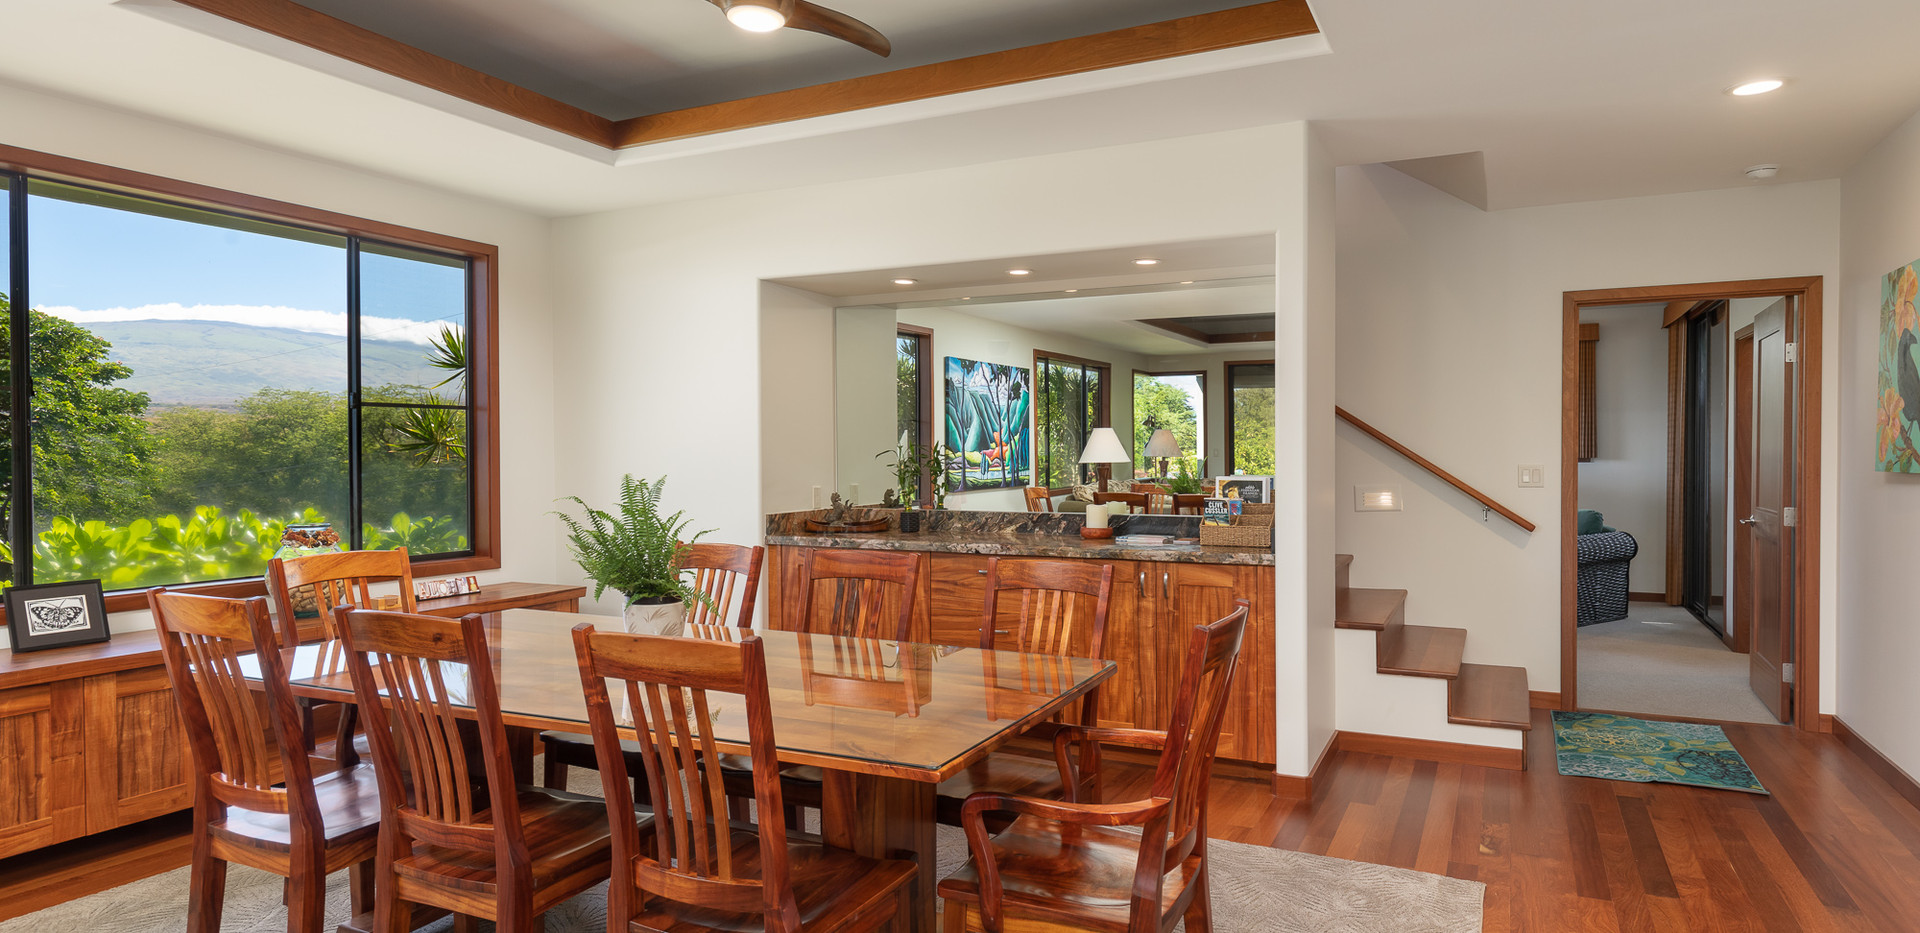 Koa wood dining table and chairs